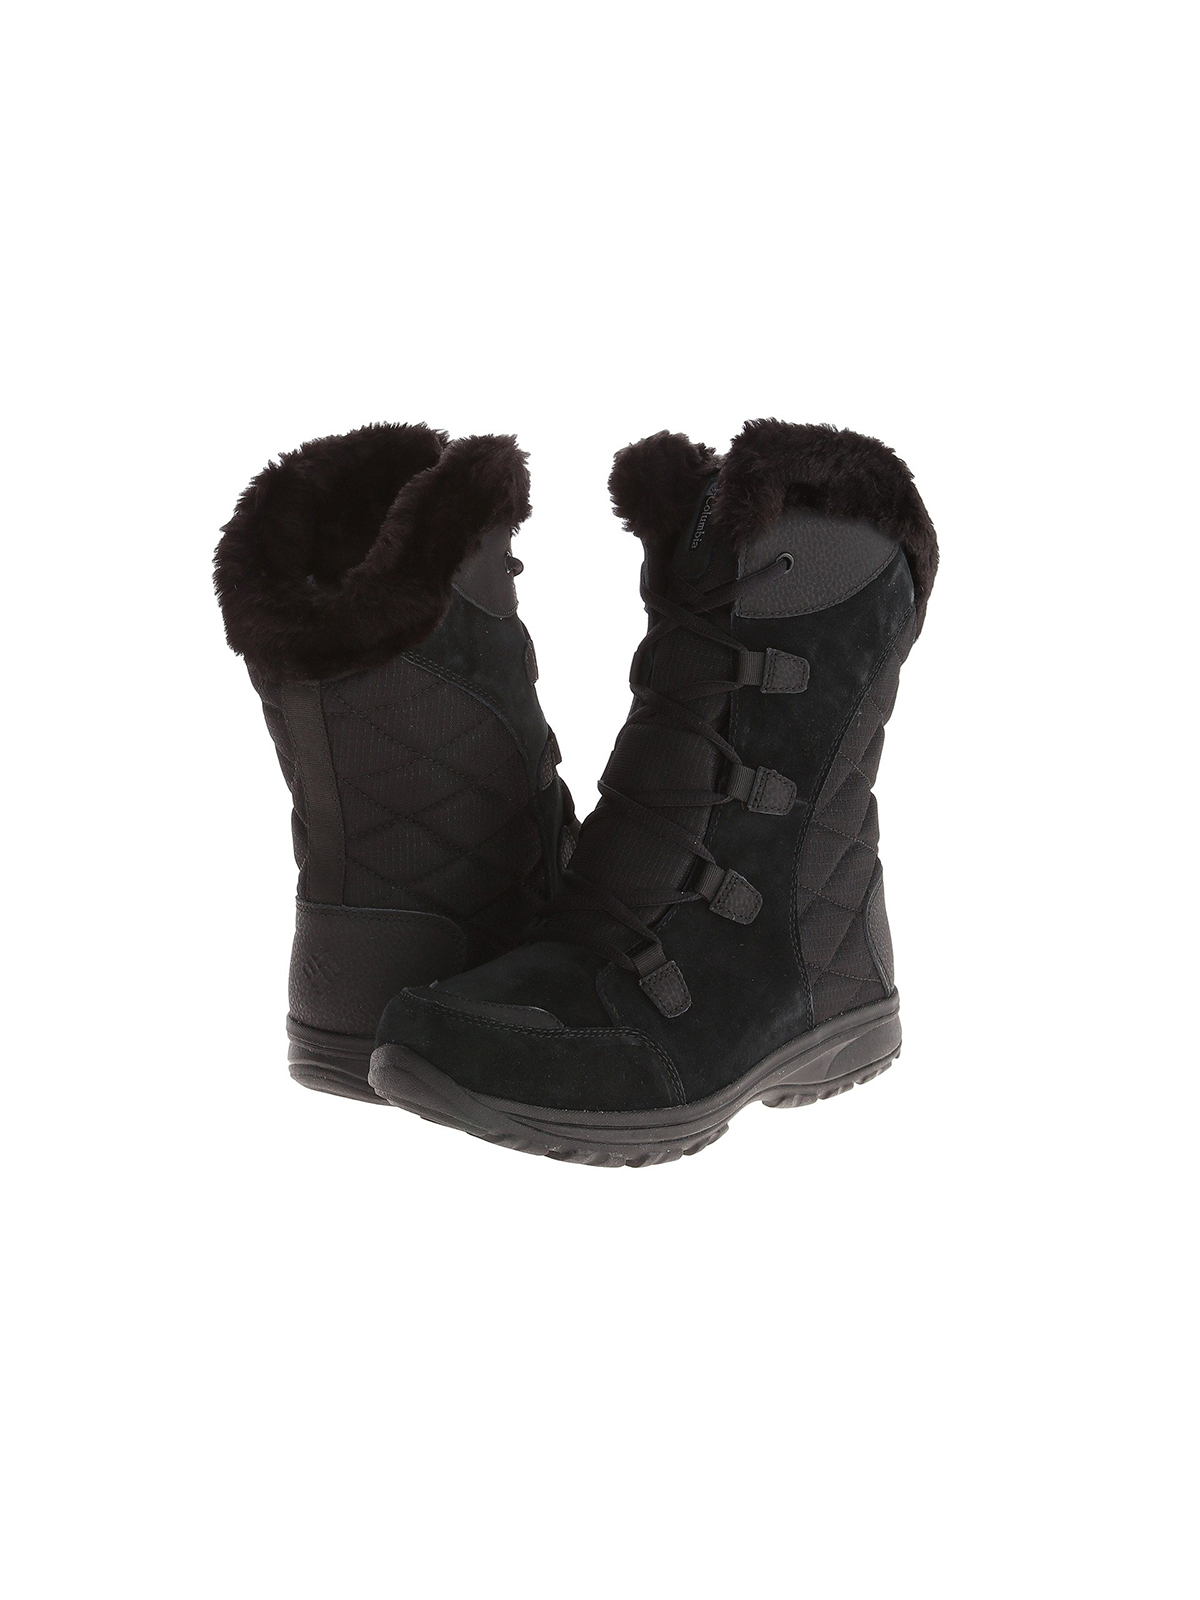 Columbia Ice Maiden black winter boots